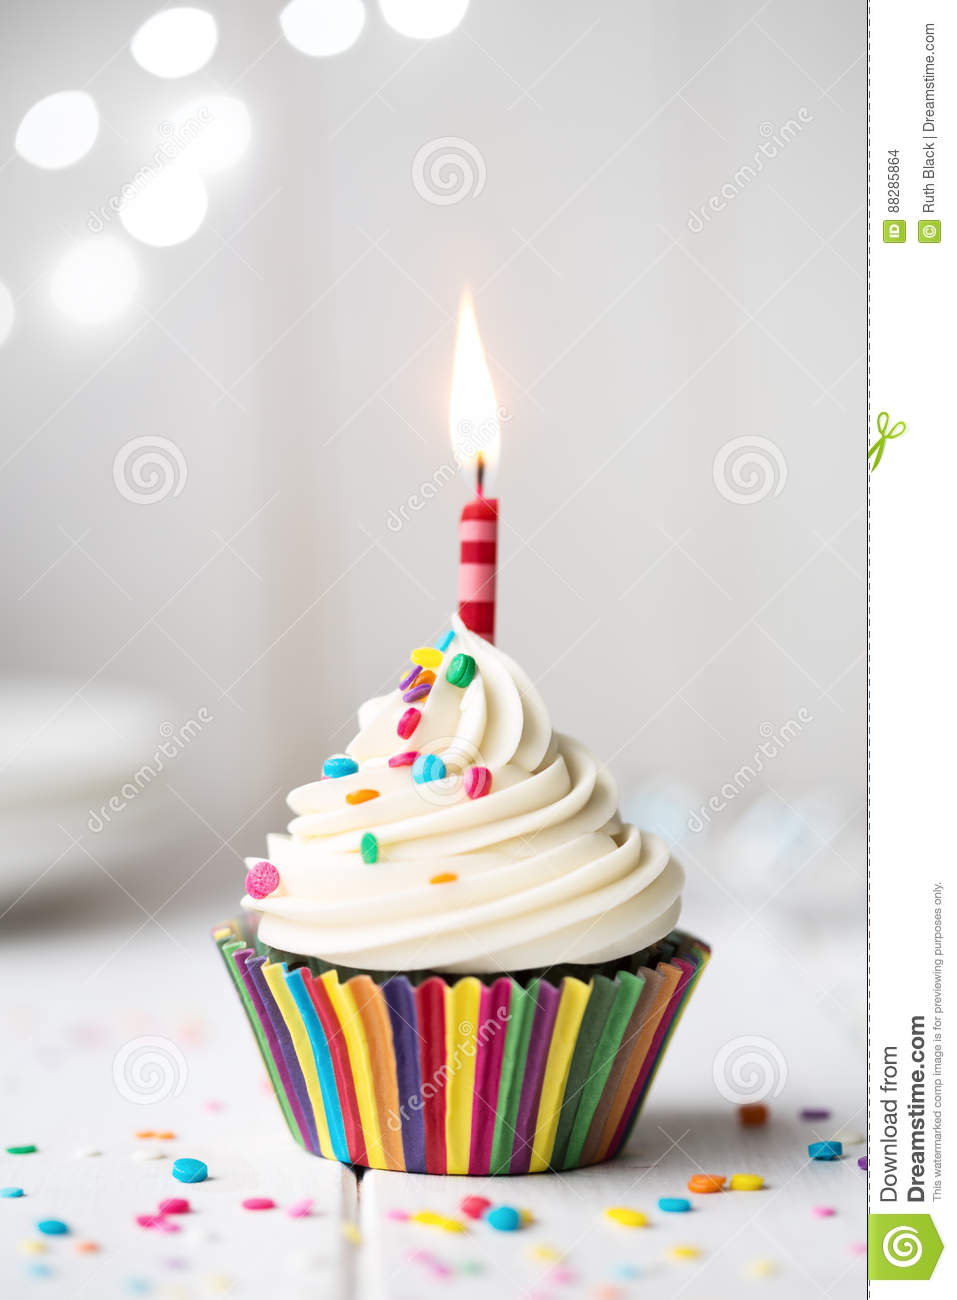 Birthday Cupcake With Candle Stock Photo Image Of